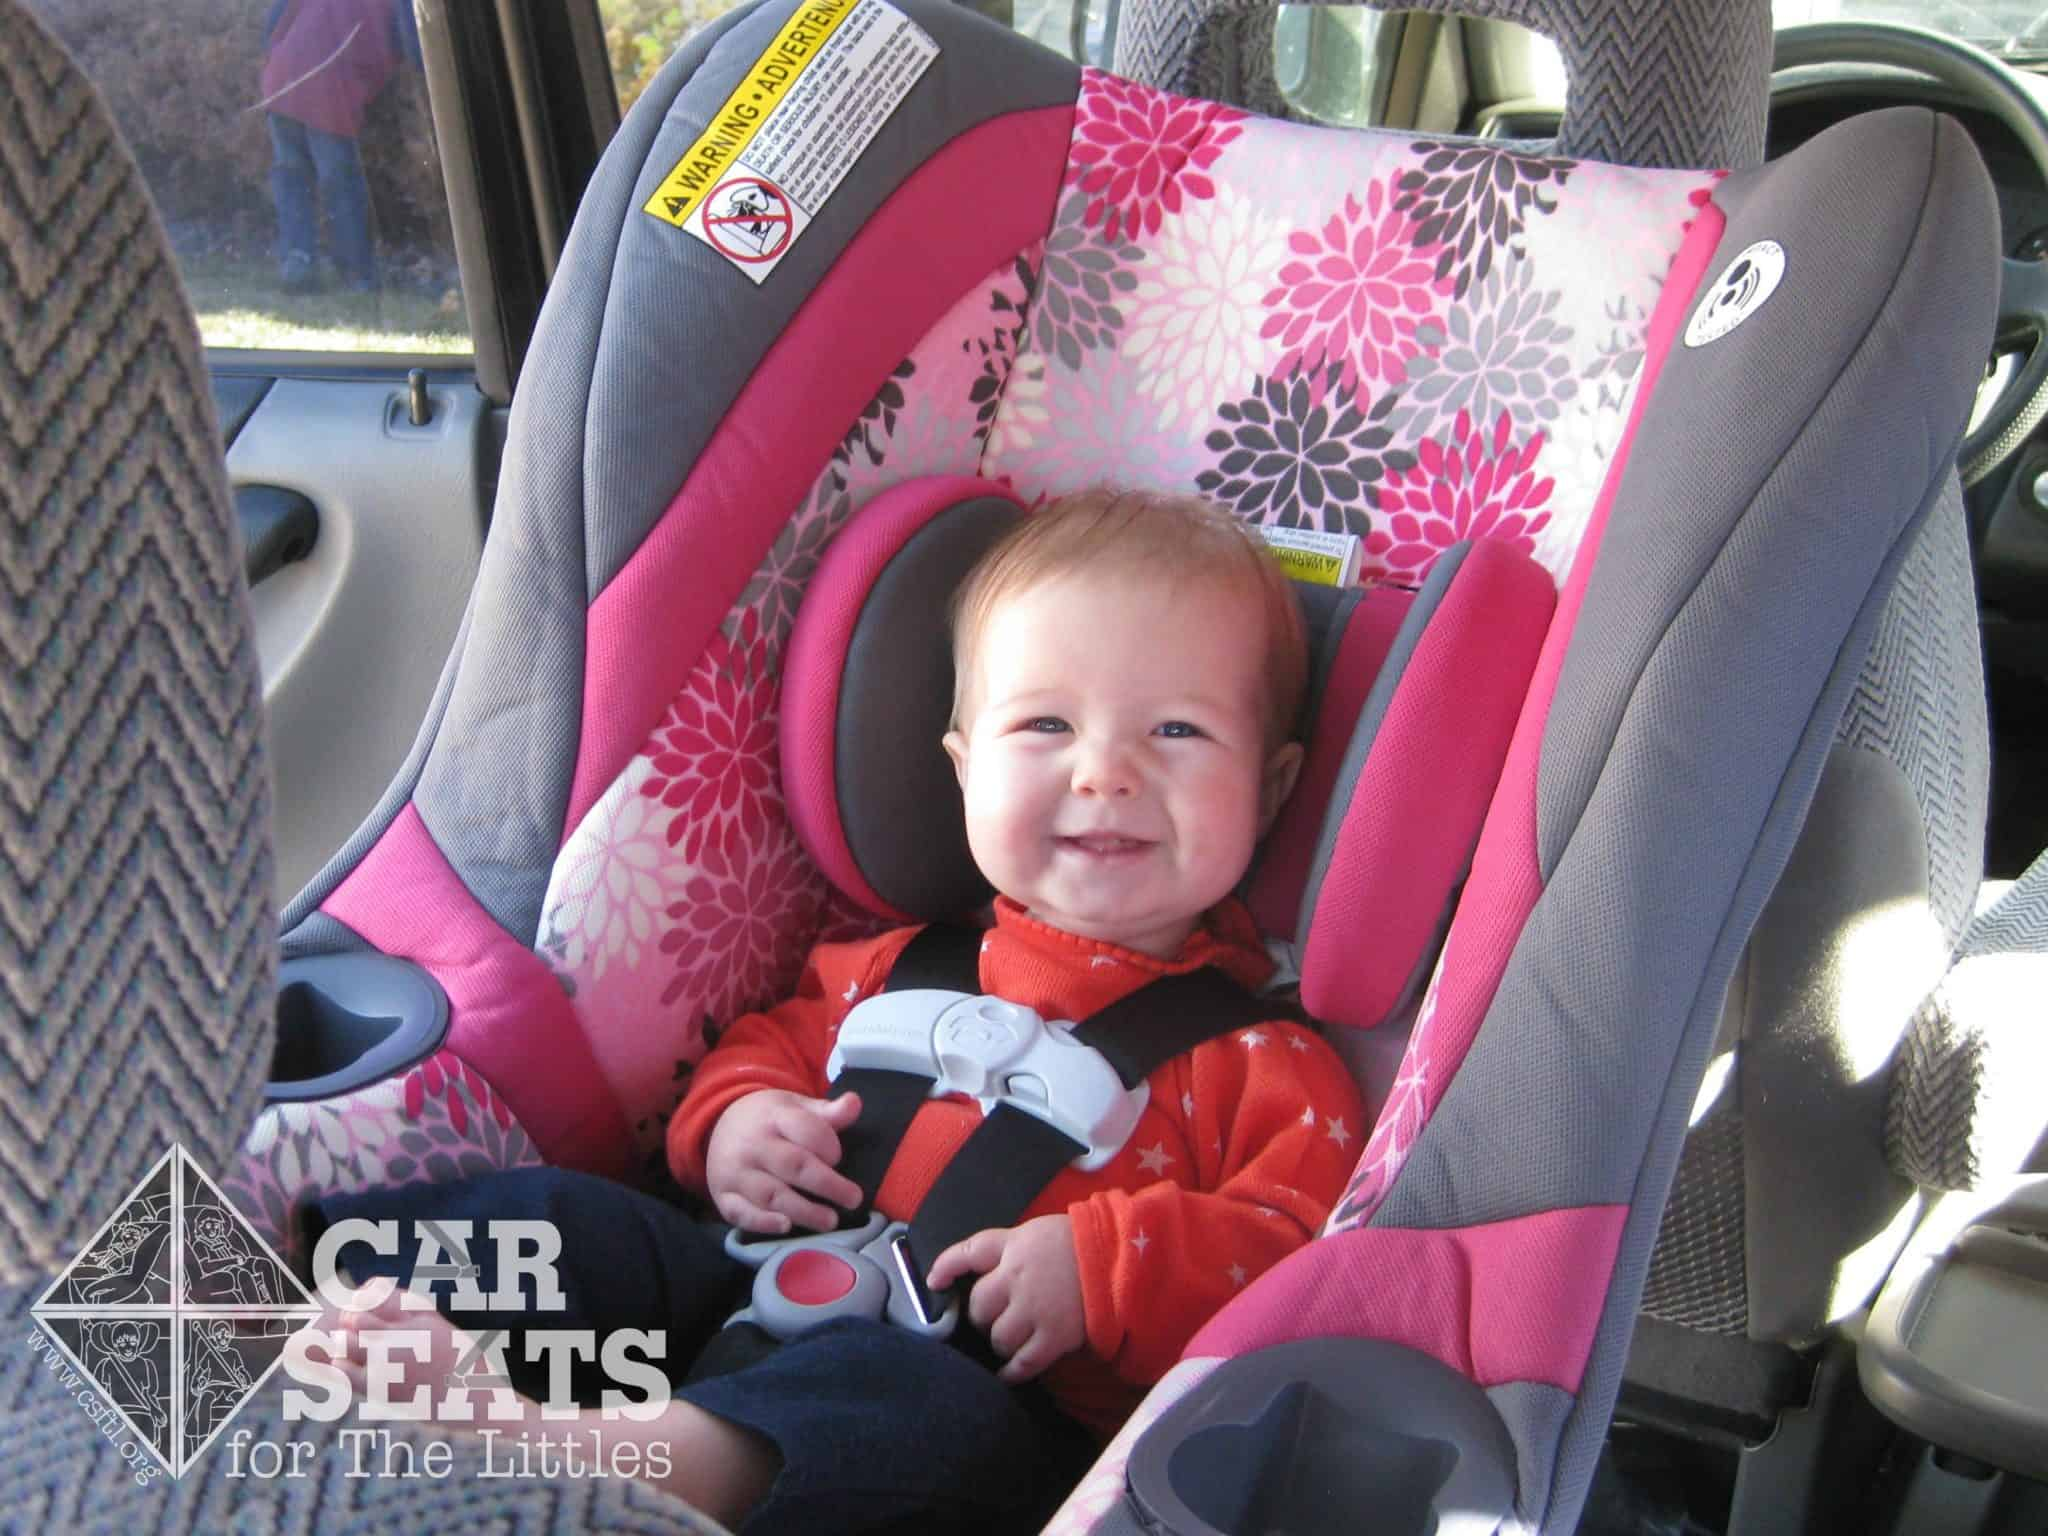 car seats for the littles graco myride reviewgraco myride review car seats for the littles. Black Bedroom Furniture Sets. Home Design Ideas